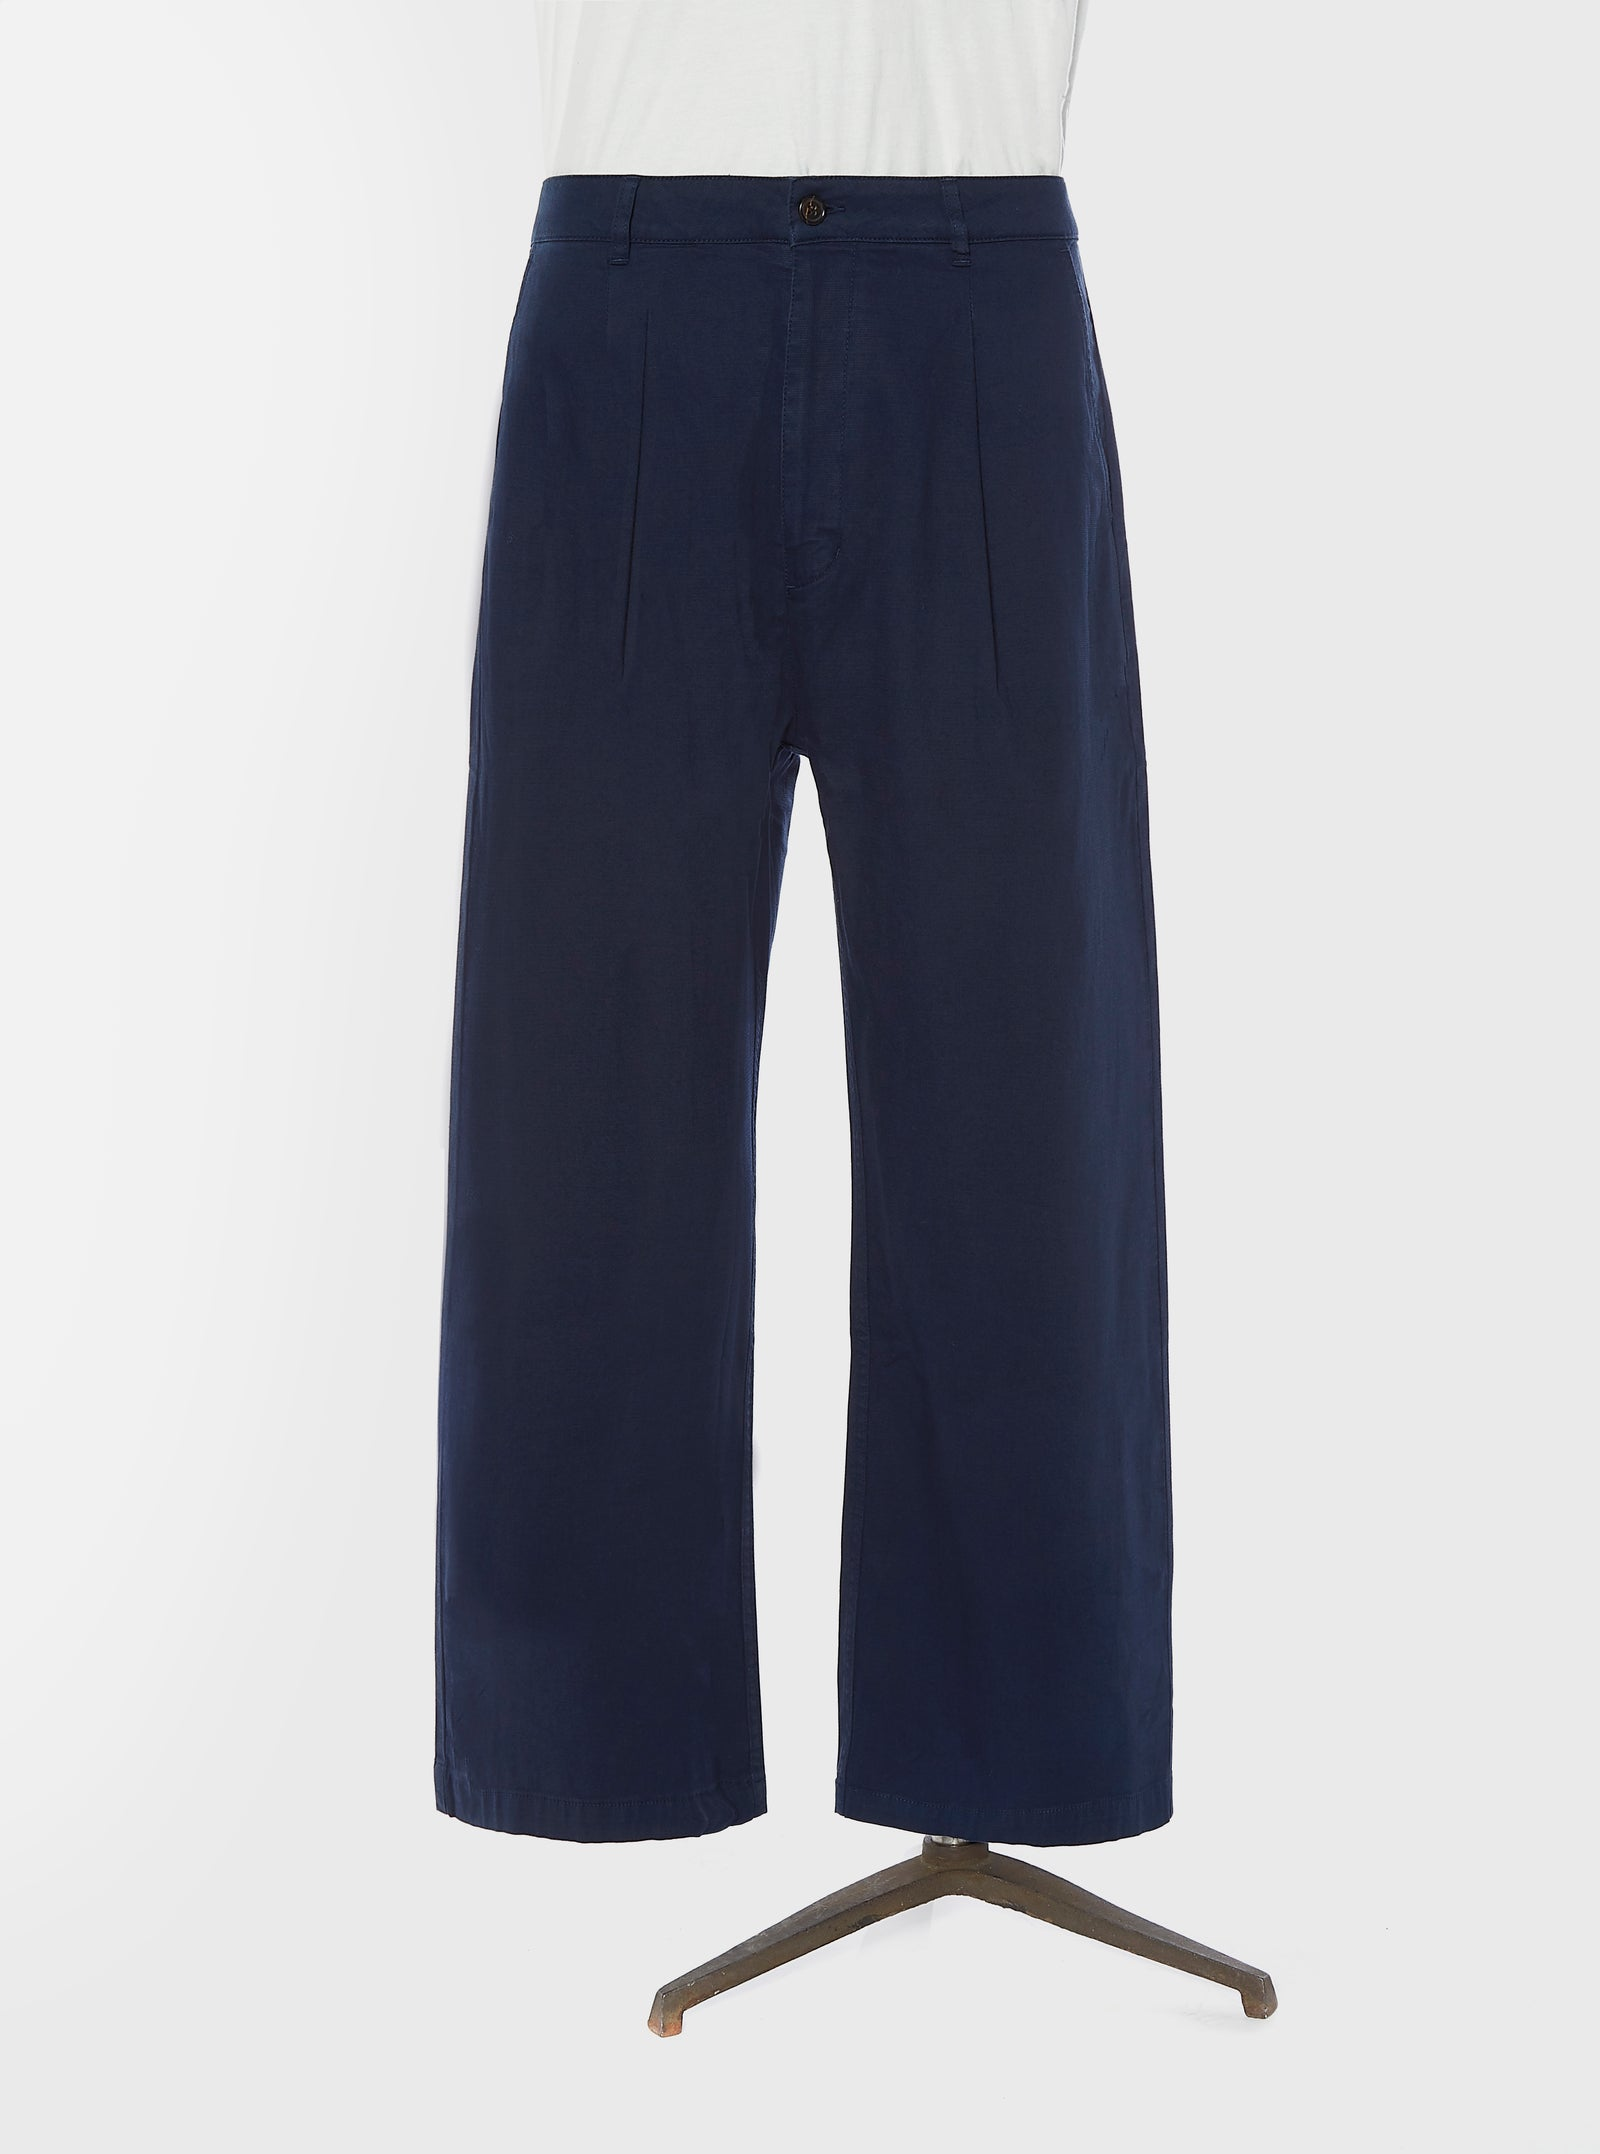 Universal Works Sailor Pant in Navy Fine Weave Cotton